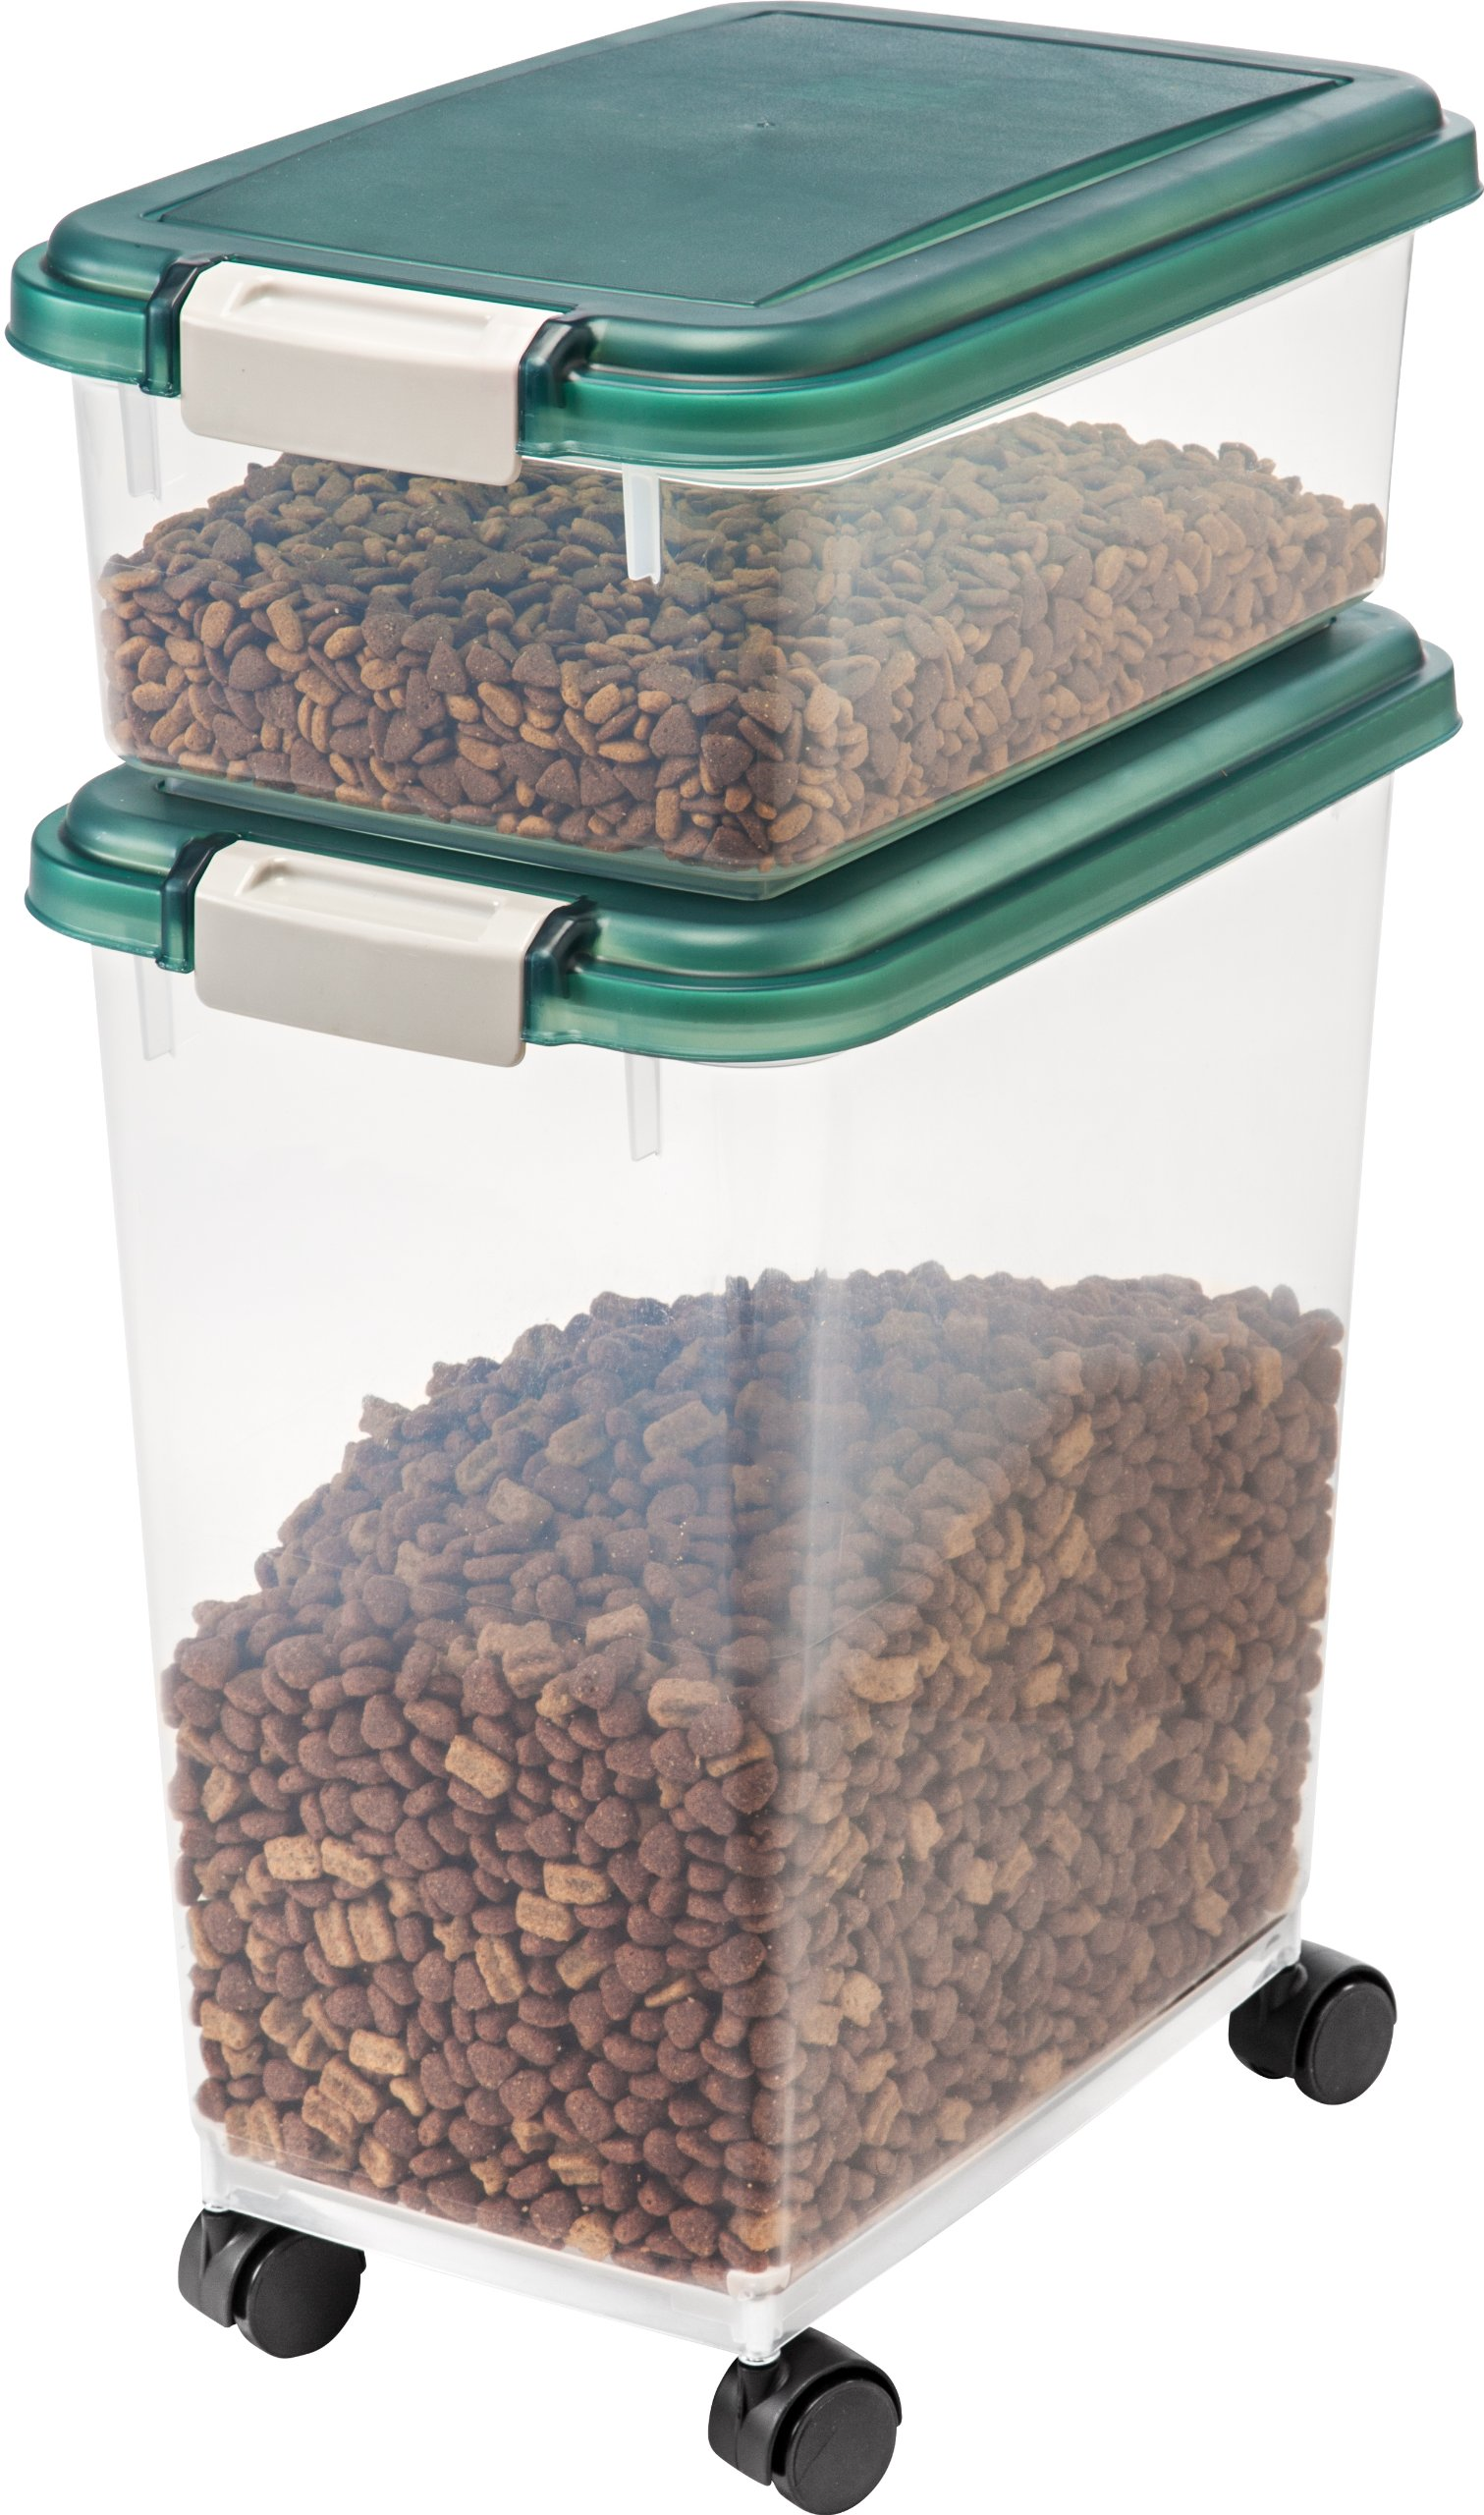 Cheap Large Pet Food Storage Find Large Pet Food Storage Deals On